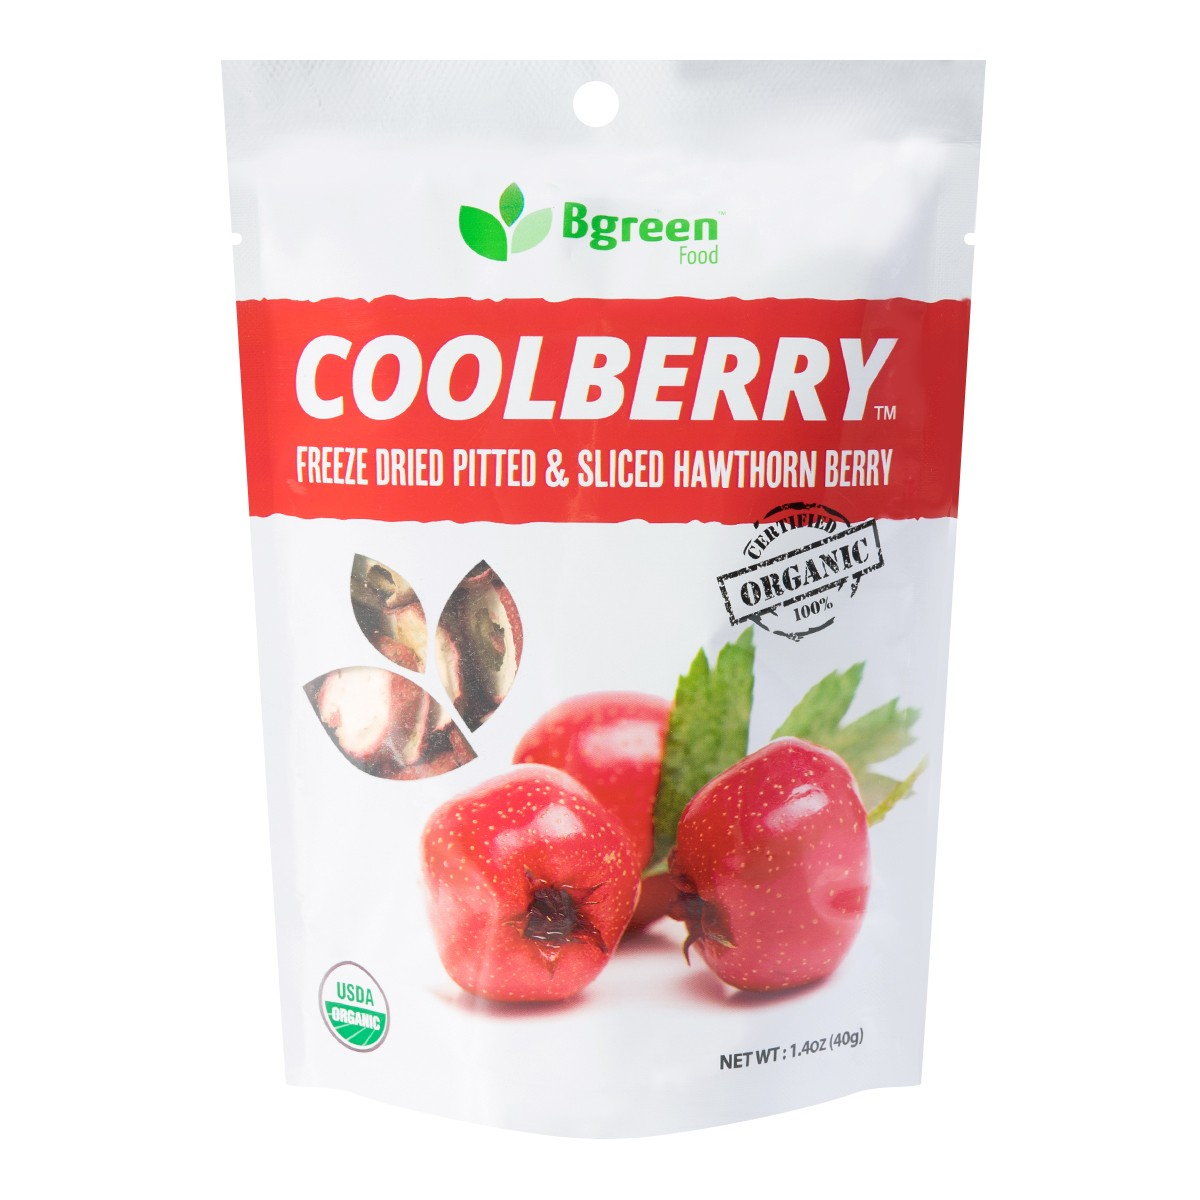 BIG GREEN Organic Hawthorn Berry Slice (Freeze Dried) 40g